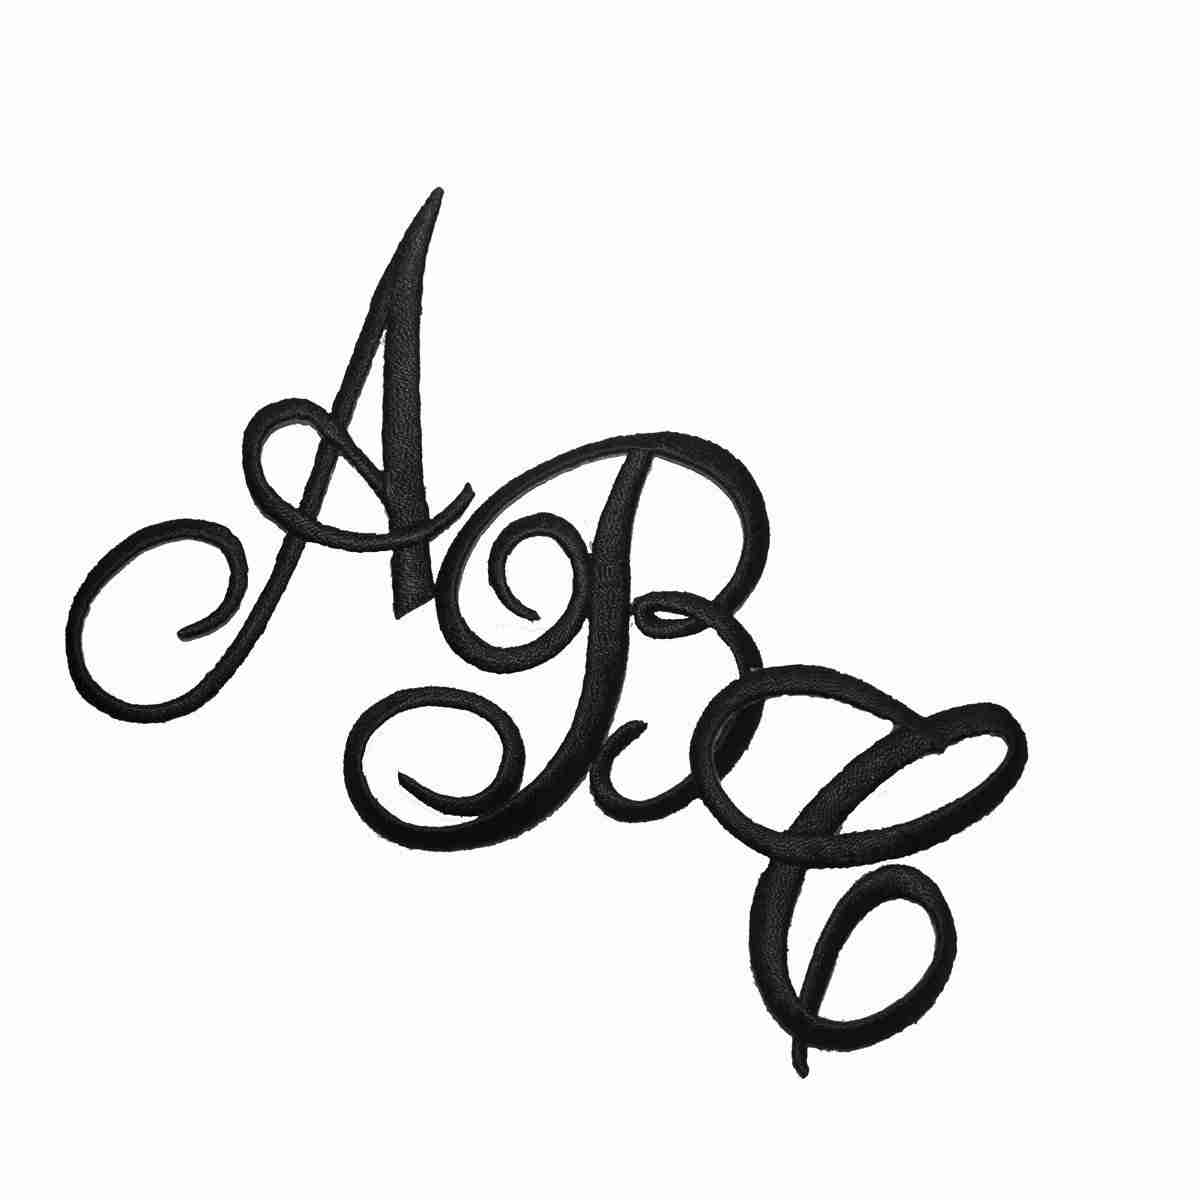 Calligraphy Fonts, Letterhead, Letters, Musica, Writing Fonts, Letter,  Lettering, Calligraphy